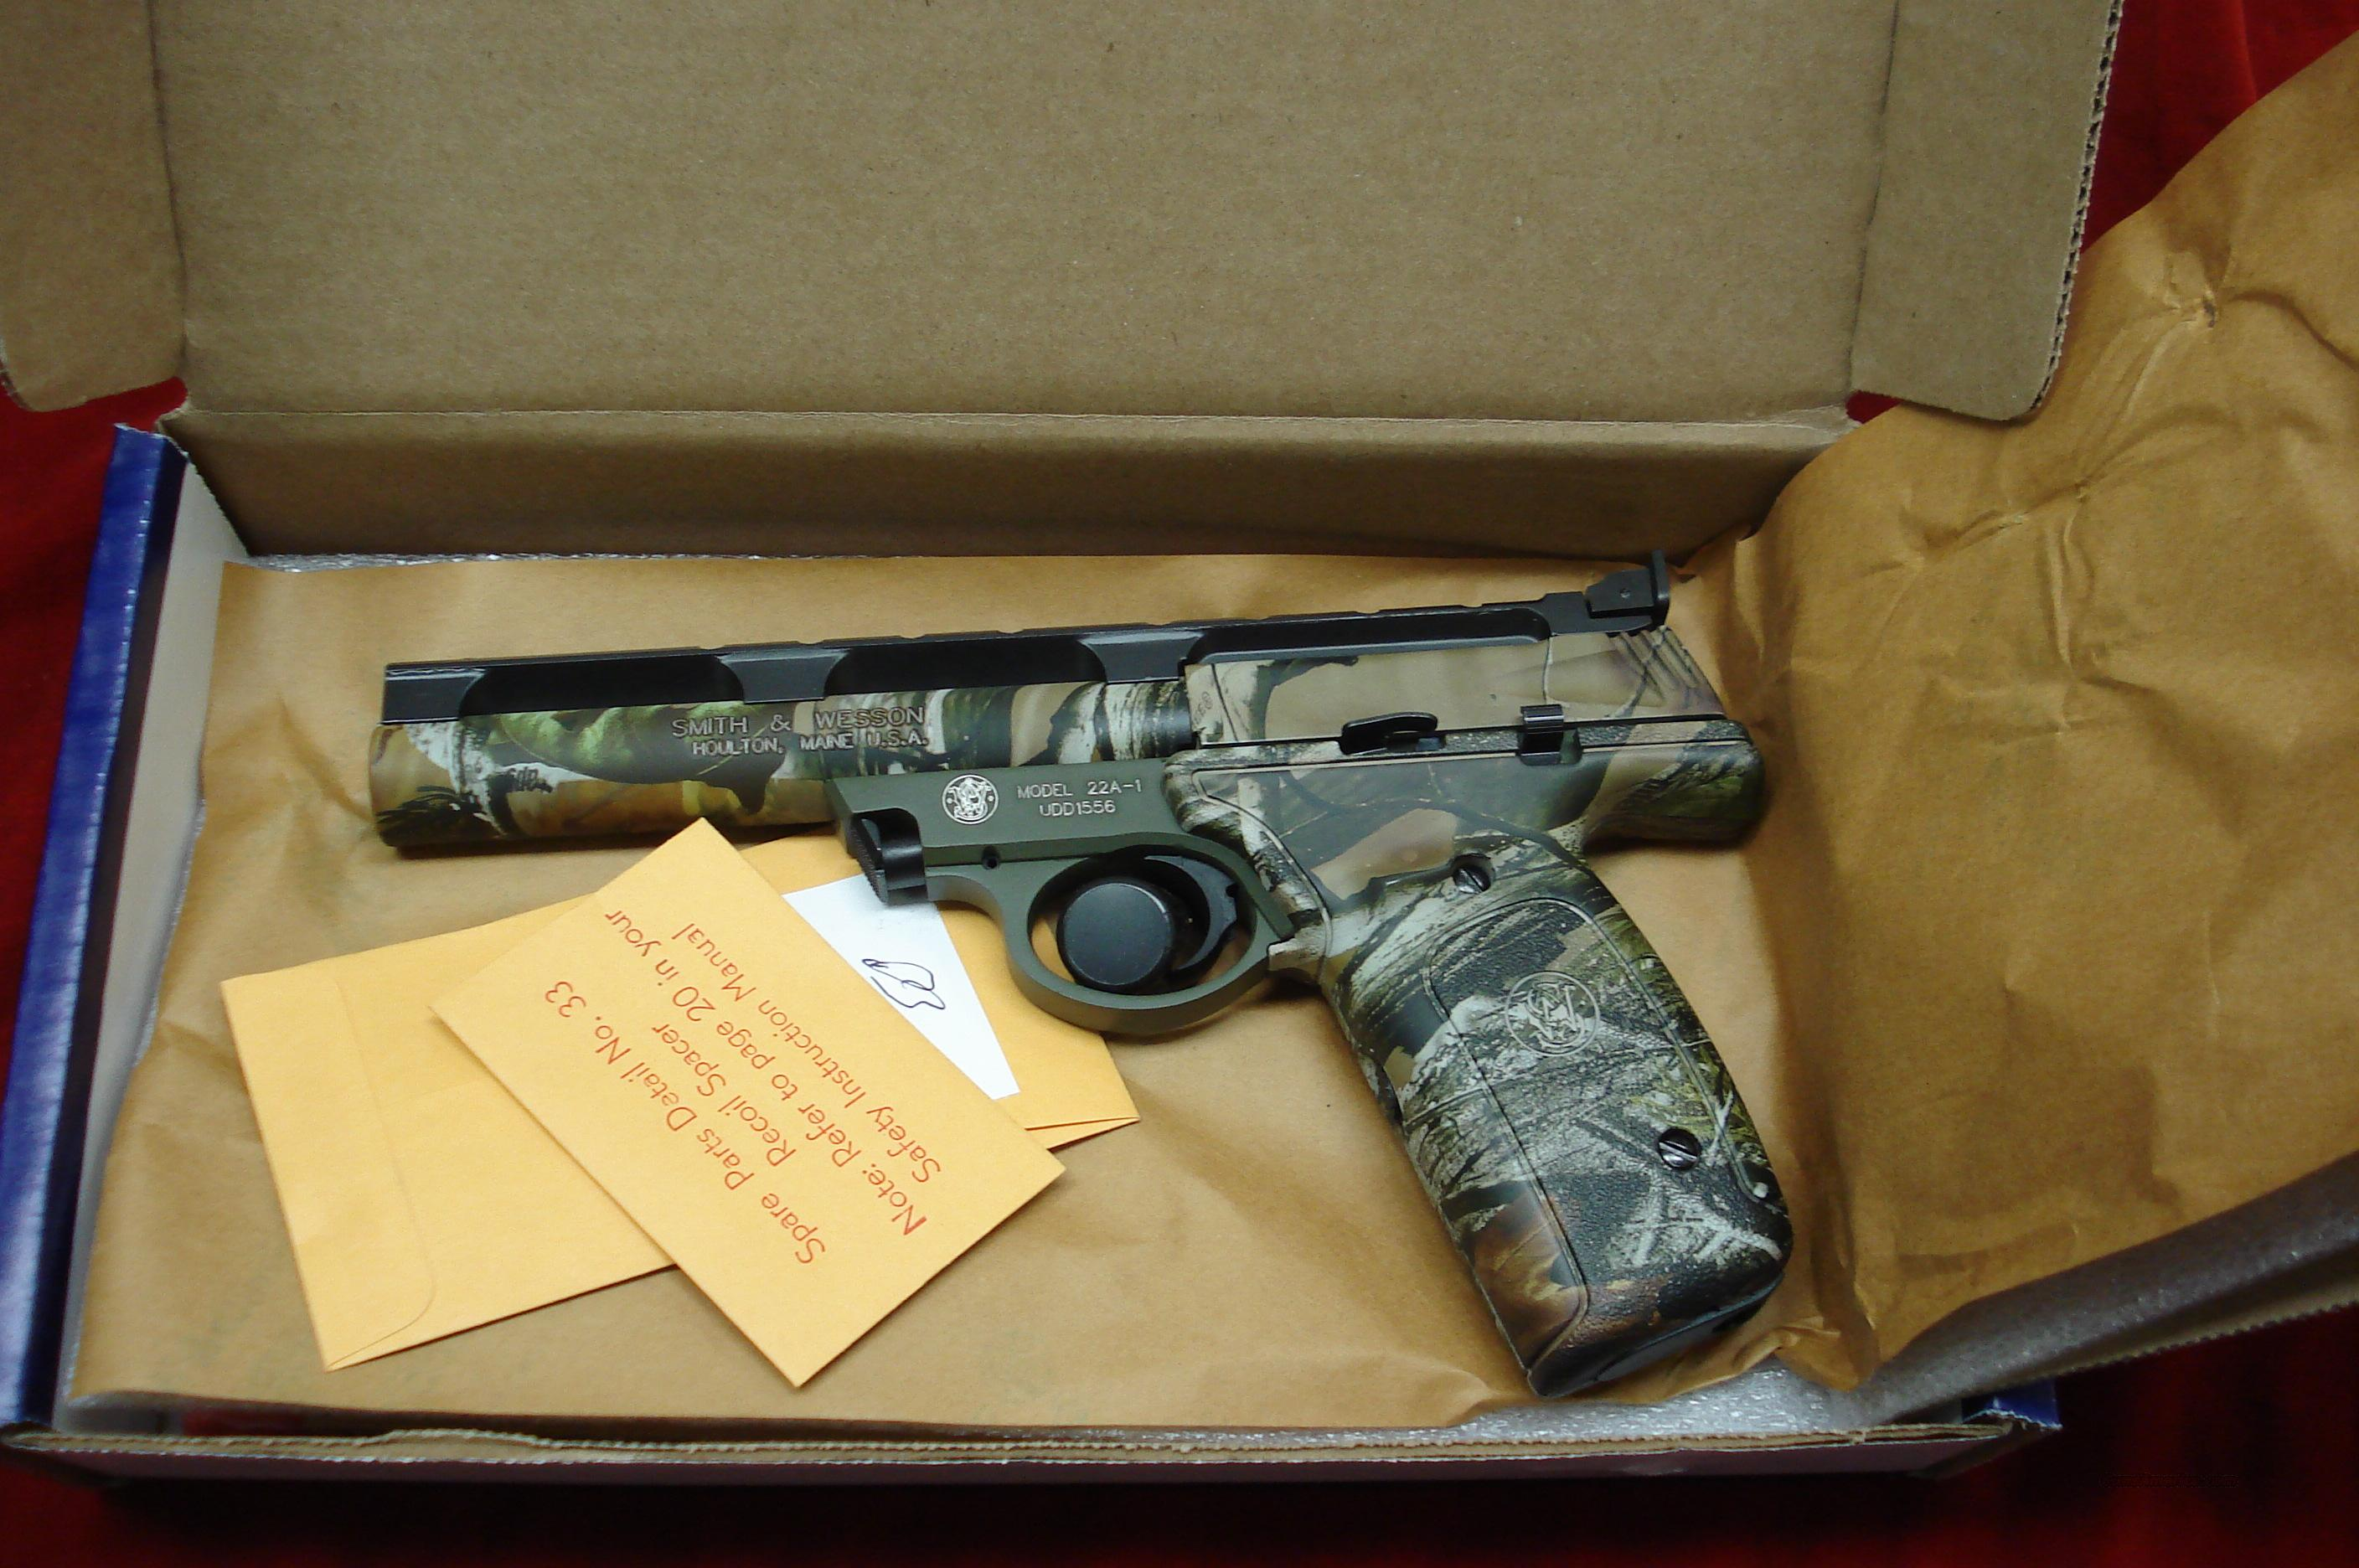 "SMITH AND WESSON 22A REALTREE CAMO 22LR. 5.5"" BULL BARREL  NEW  Guns > Pistols > Smith & Wesson Pistols - Autos > .22 Autos"